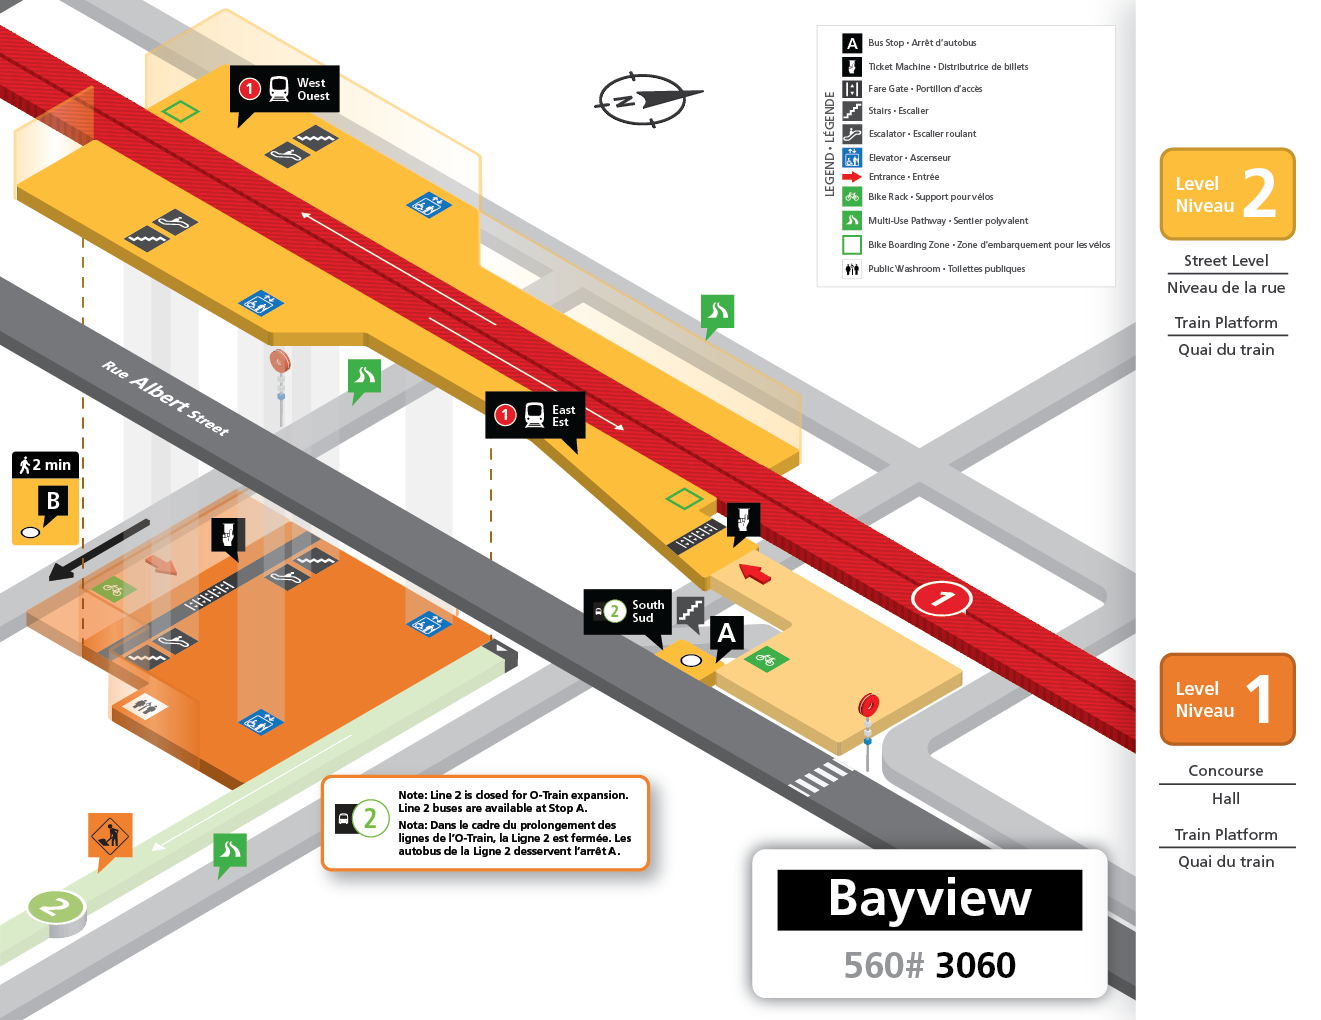 Bayview station layout